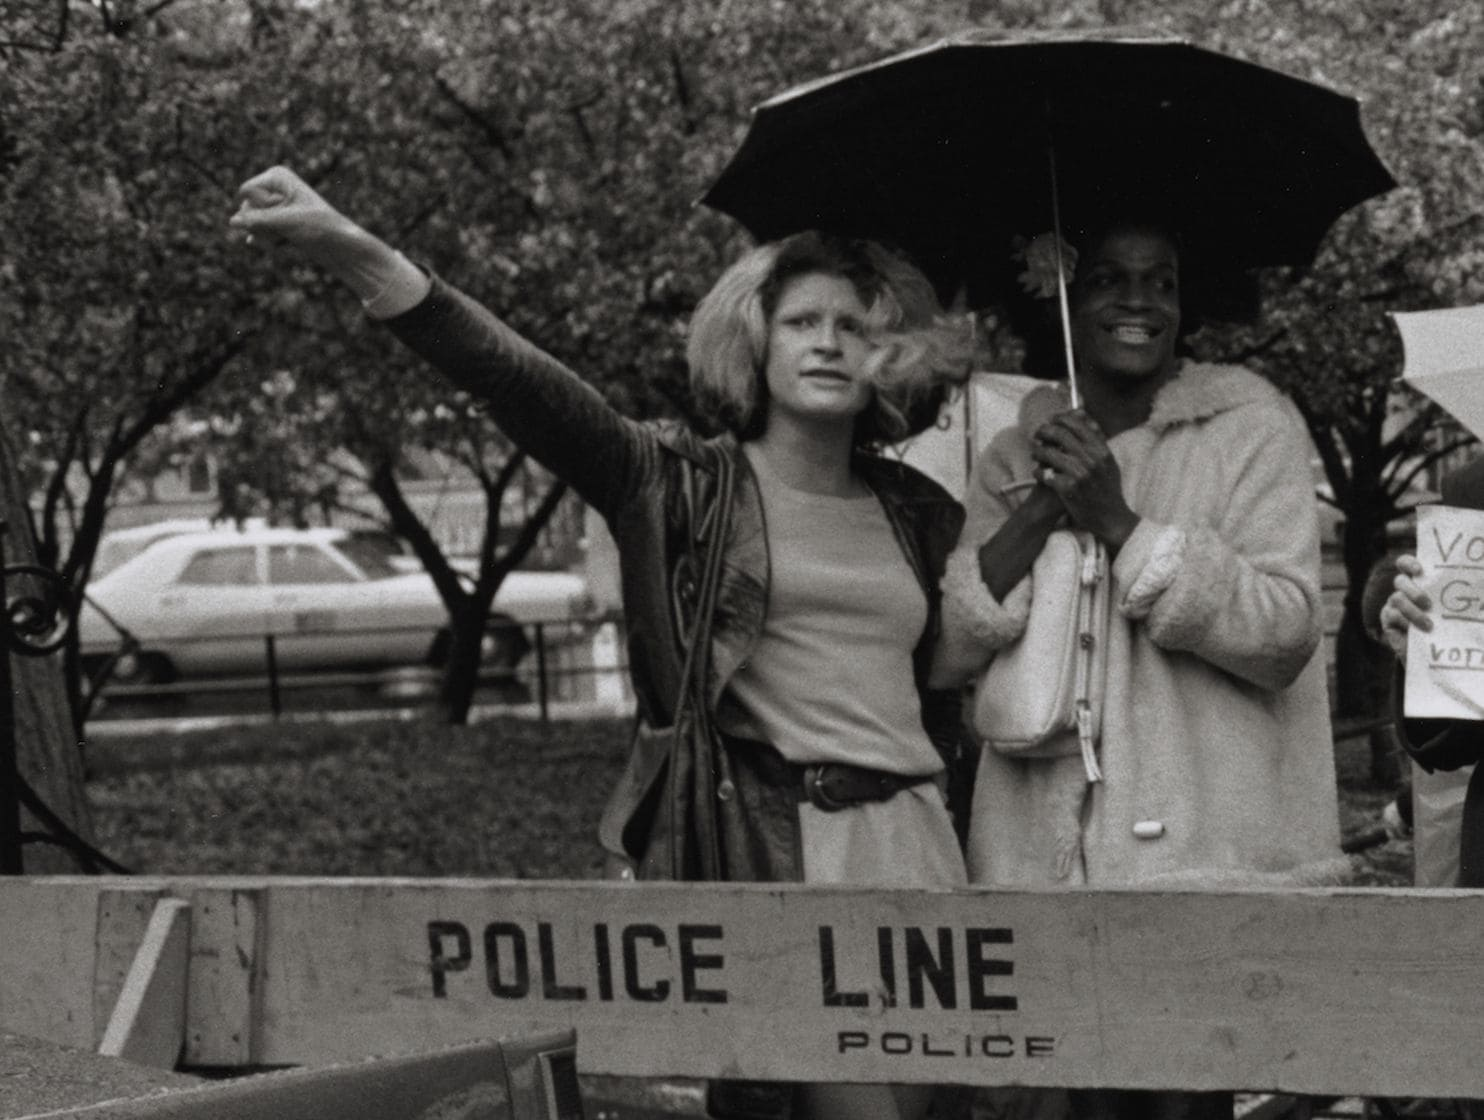 Sylvia Rivera, left, and Marsha P. Johnson protest at a rally for gay rights in New York in 1973. (Diana Davies/Manuscripts and Archives Division, The New York Public Library)